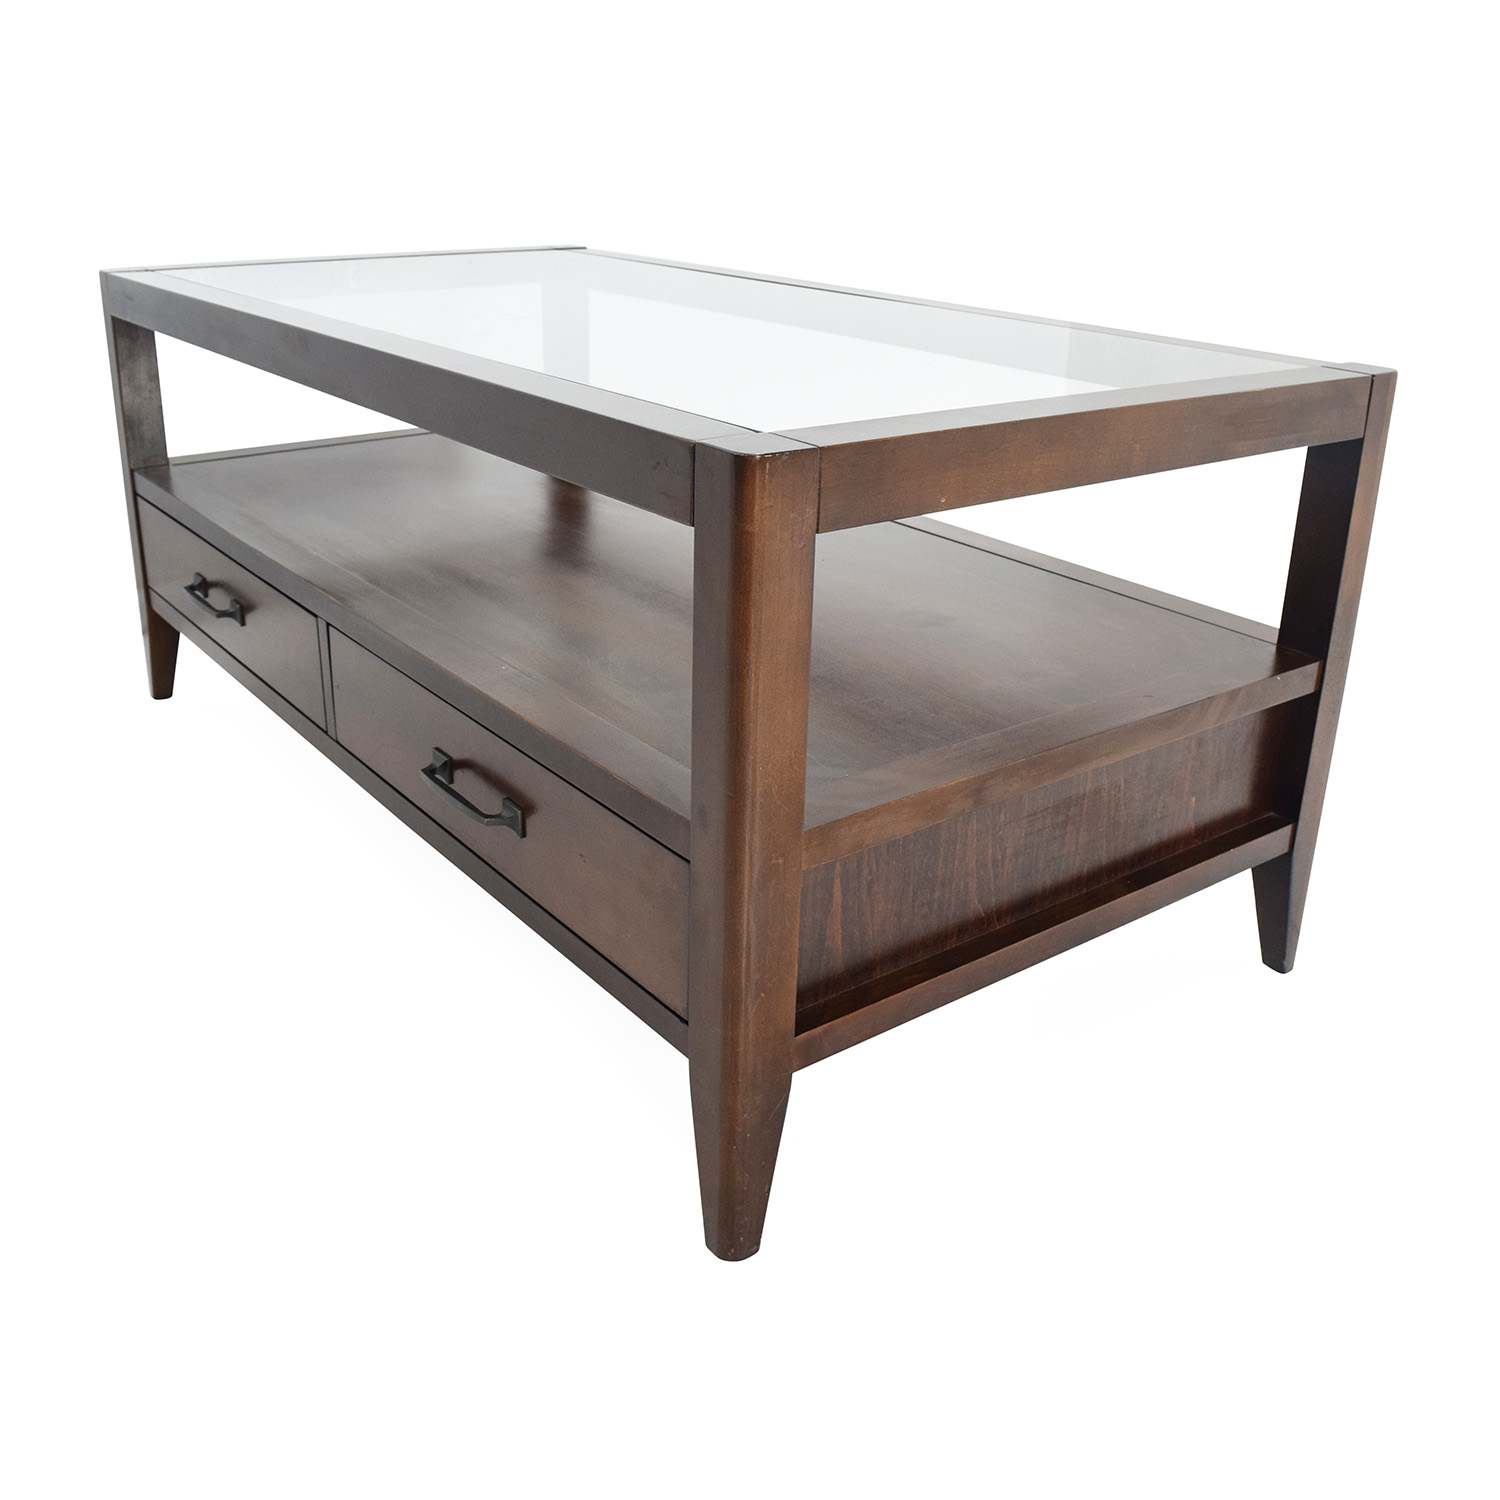 60 Off Unknown Brand Glass Top Coffee Table Tables